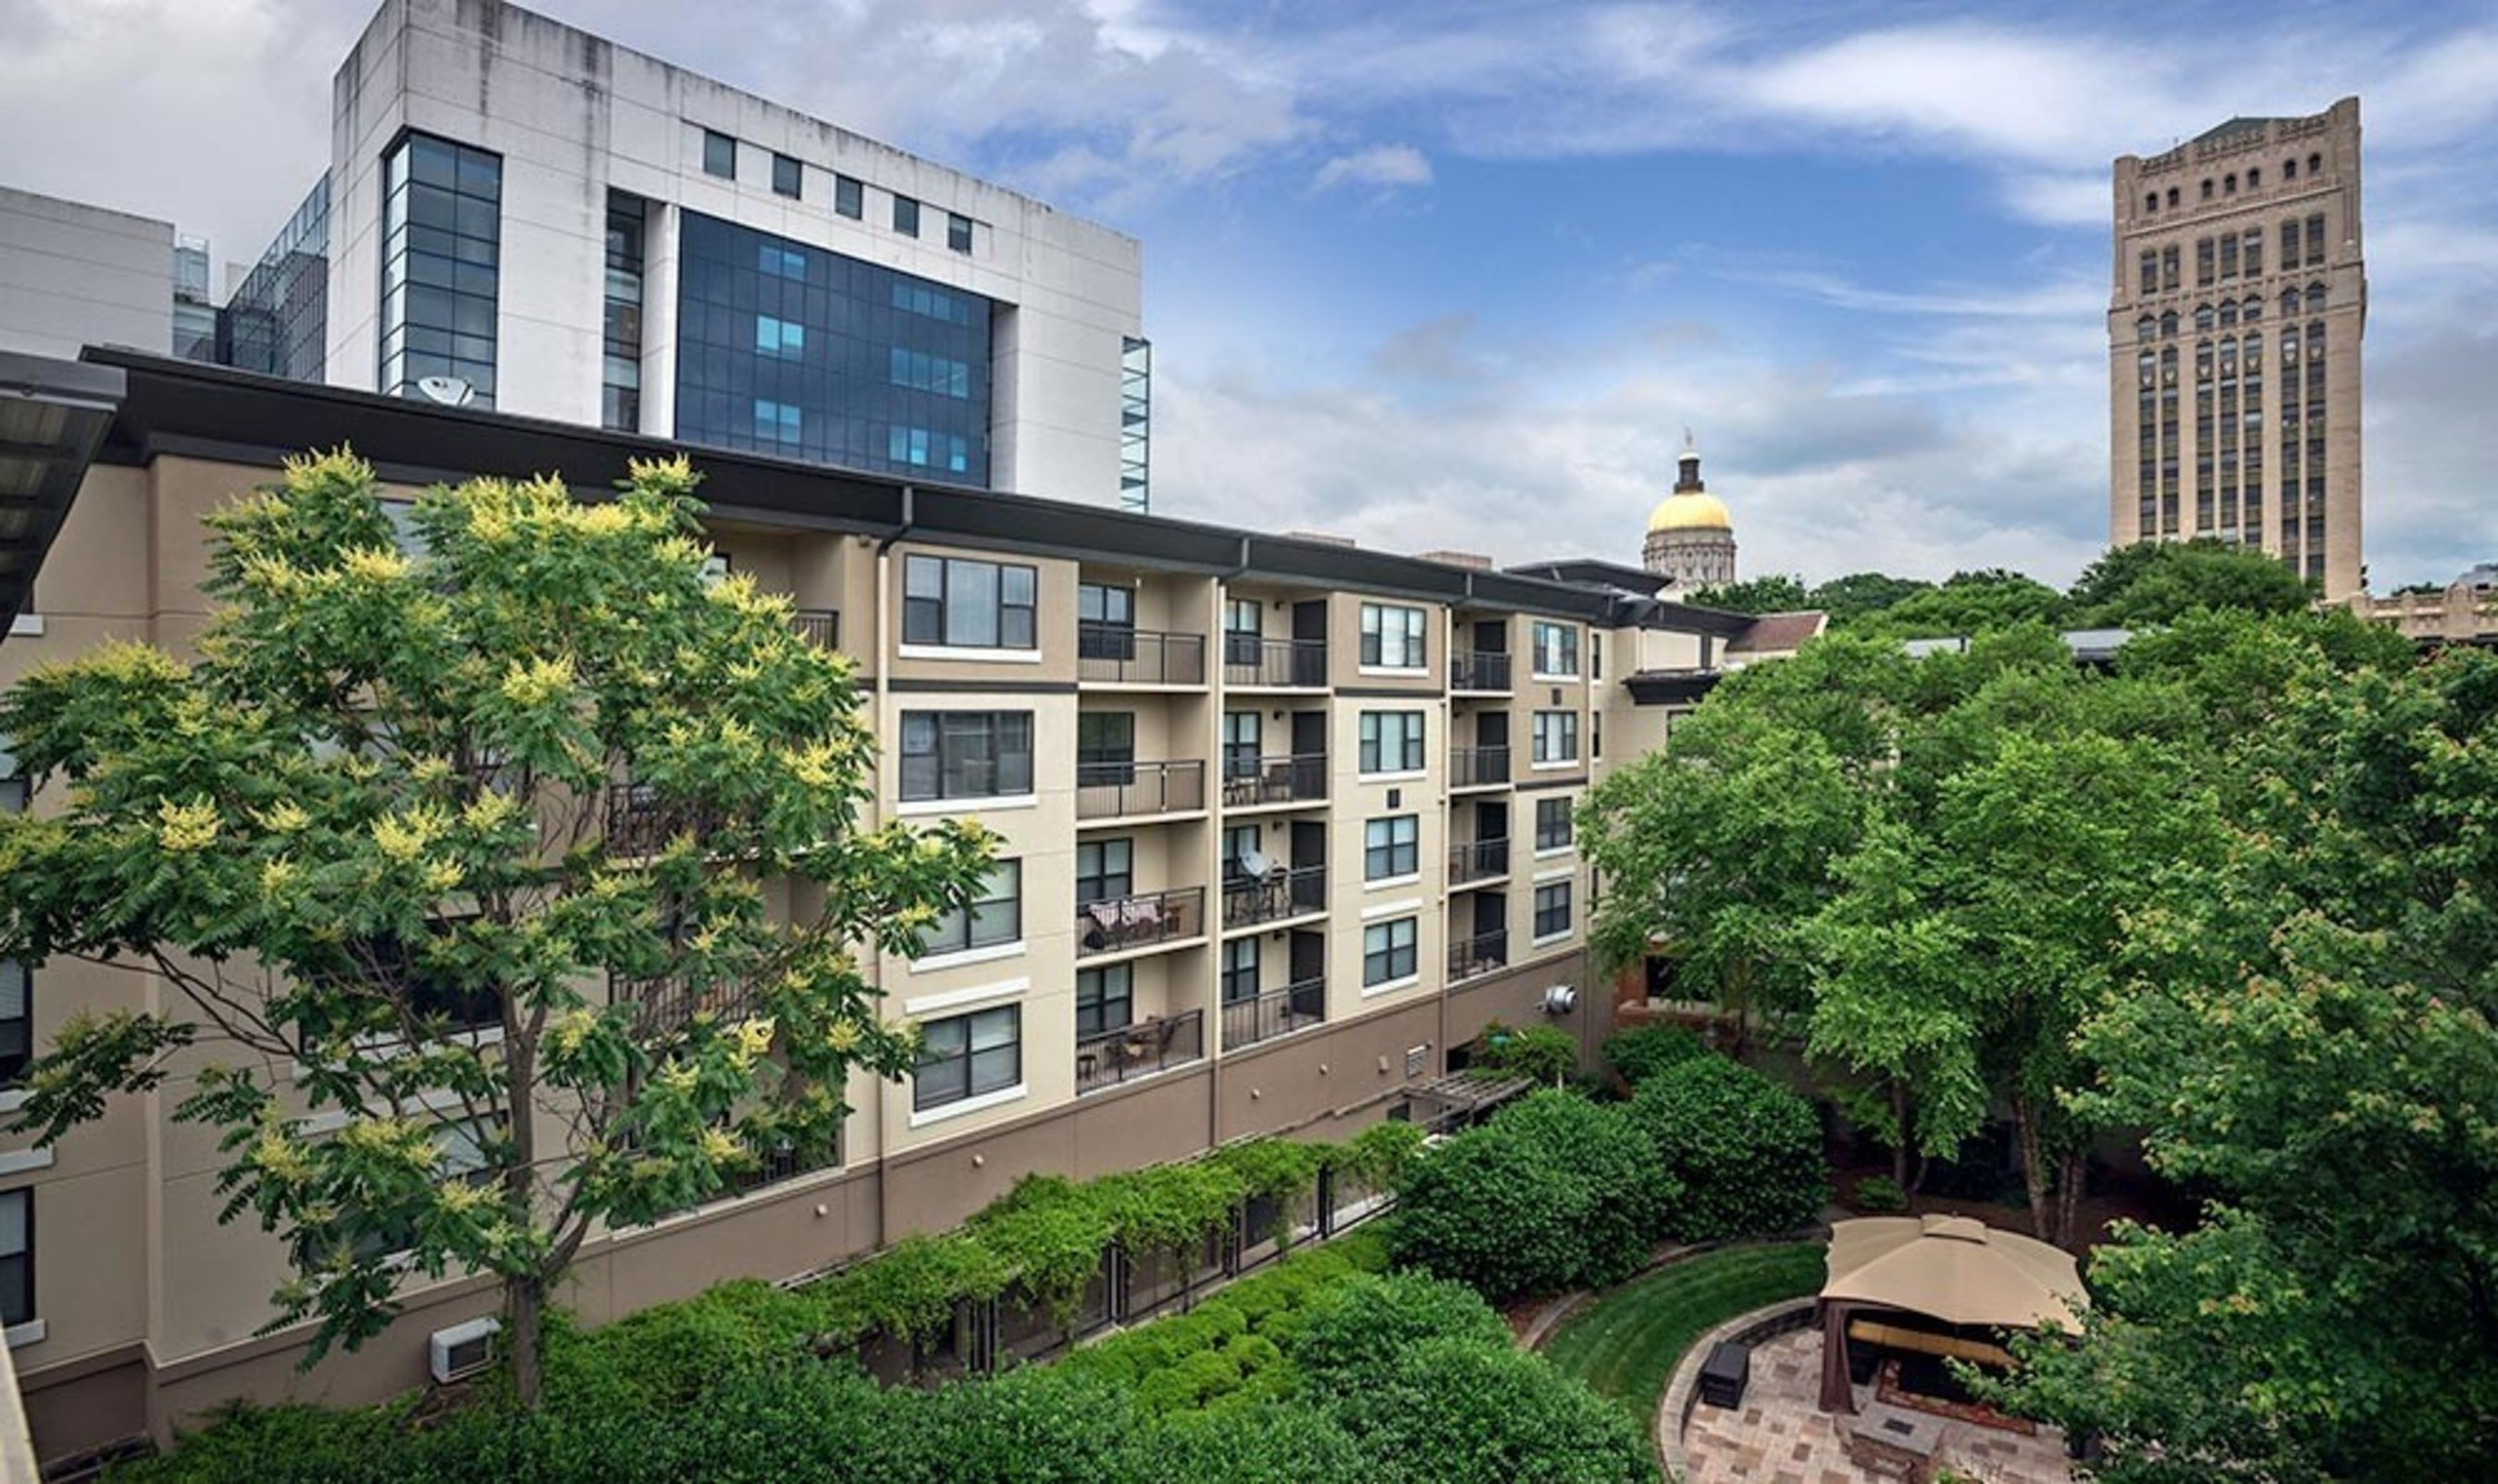 JMG Realty Inc. Selected to Manage City Plaza for the City of Atlanta